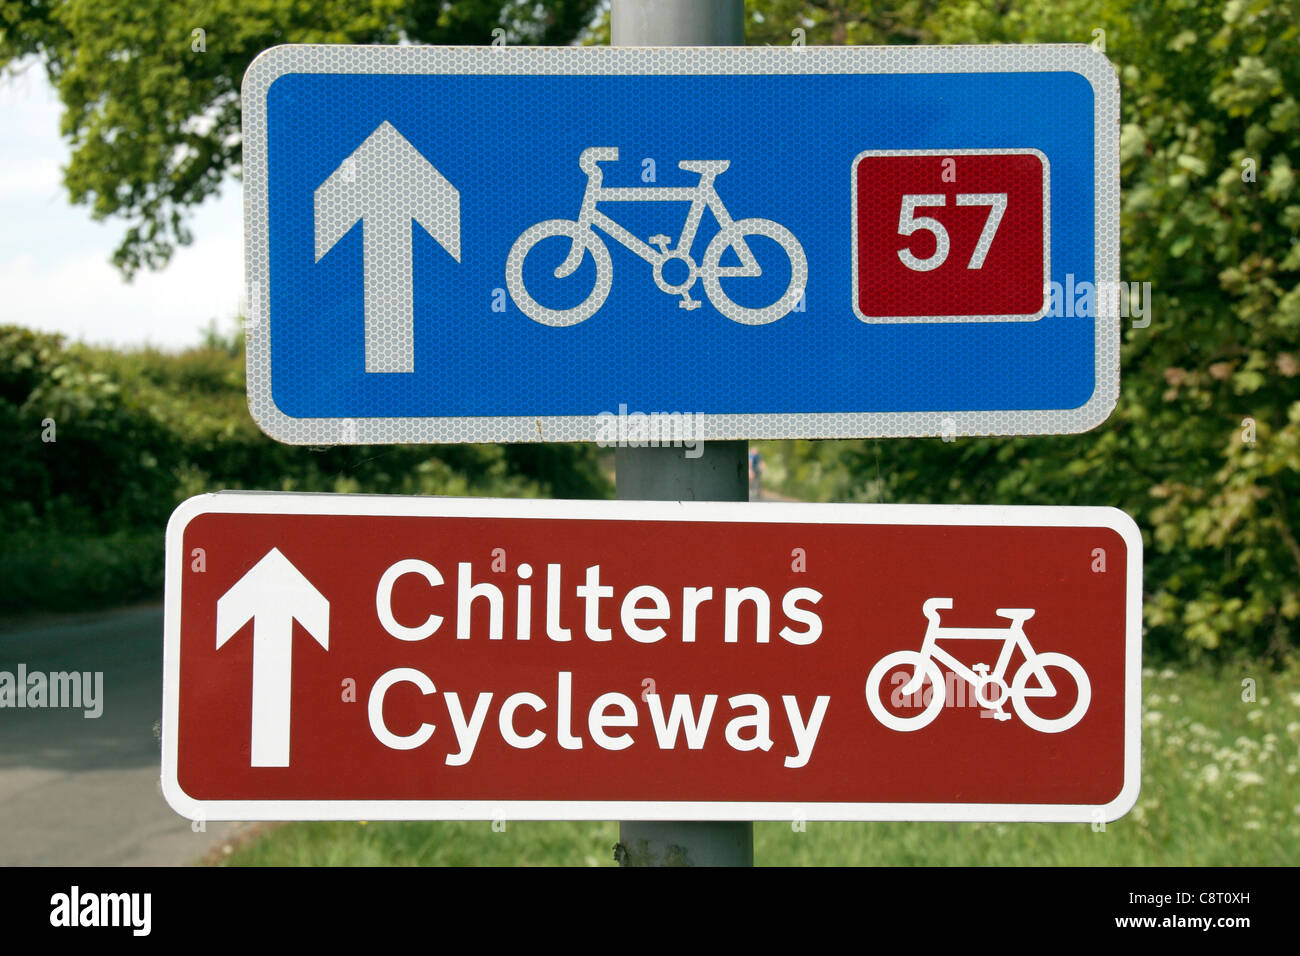 Road signs for the Chilterns Cycleway and national cycle route 57 near Great Missenden, Buckinghamshire, England. - Stock Image